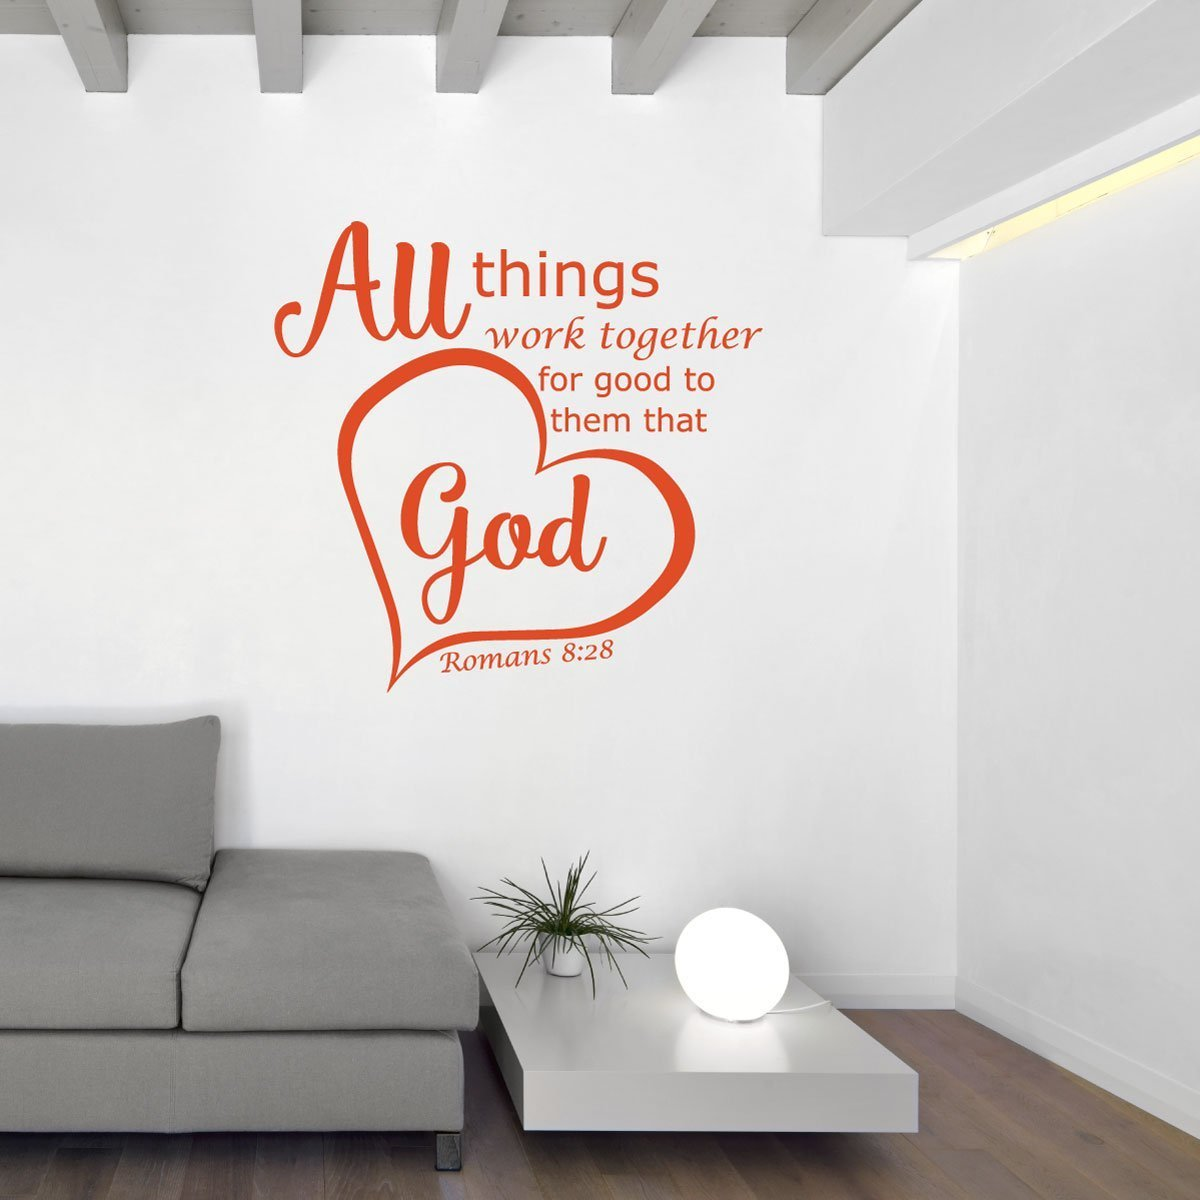 Bible Verse Wall Decals   Romans 8:28   All Things Work Together For Good